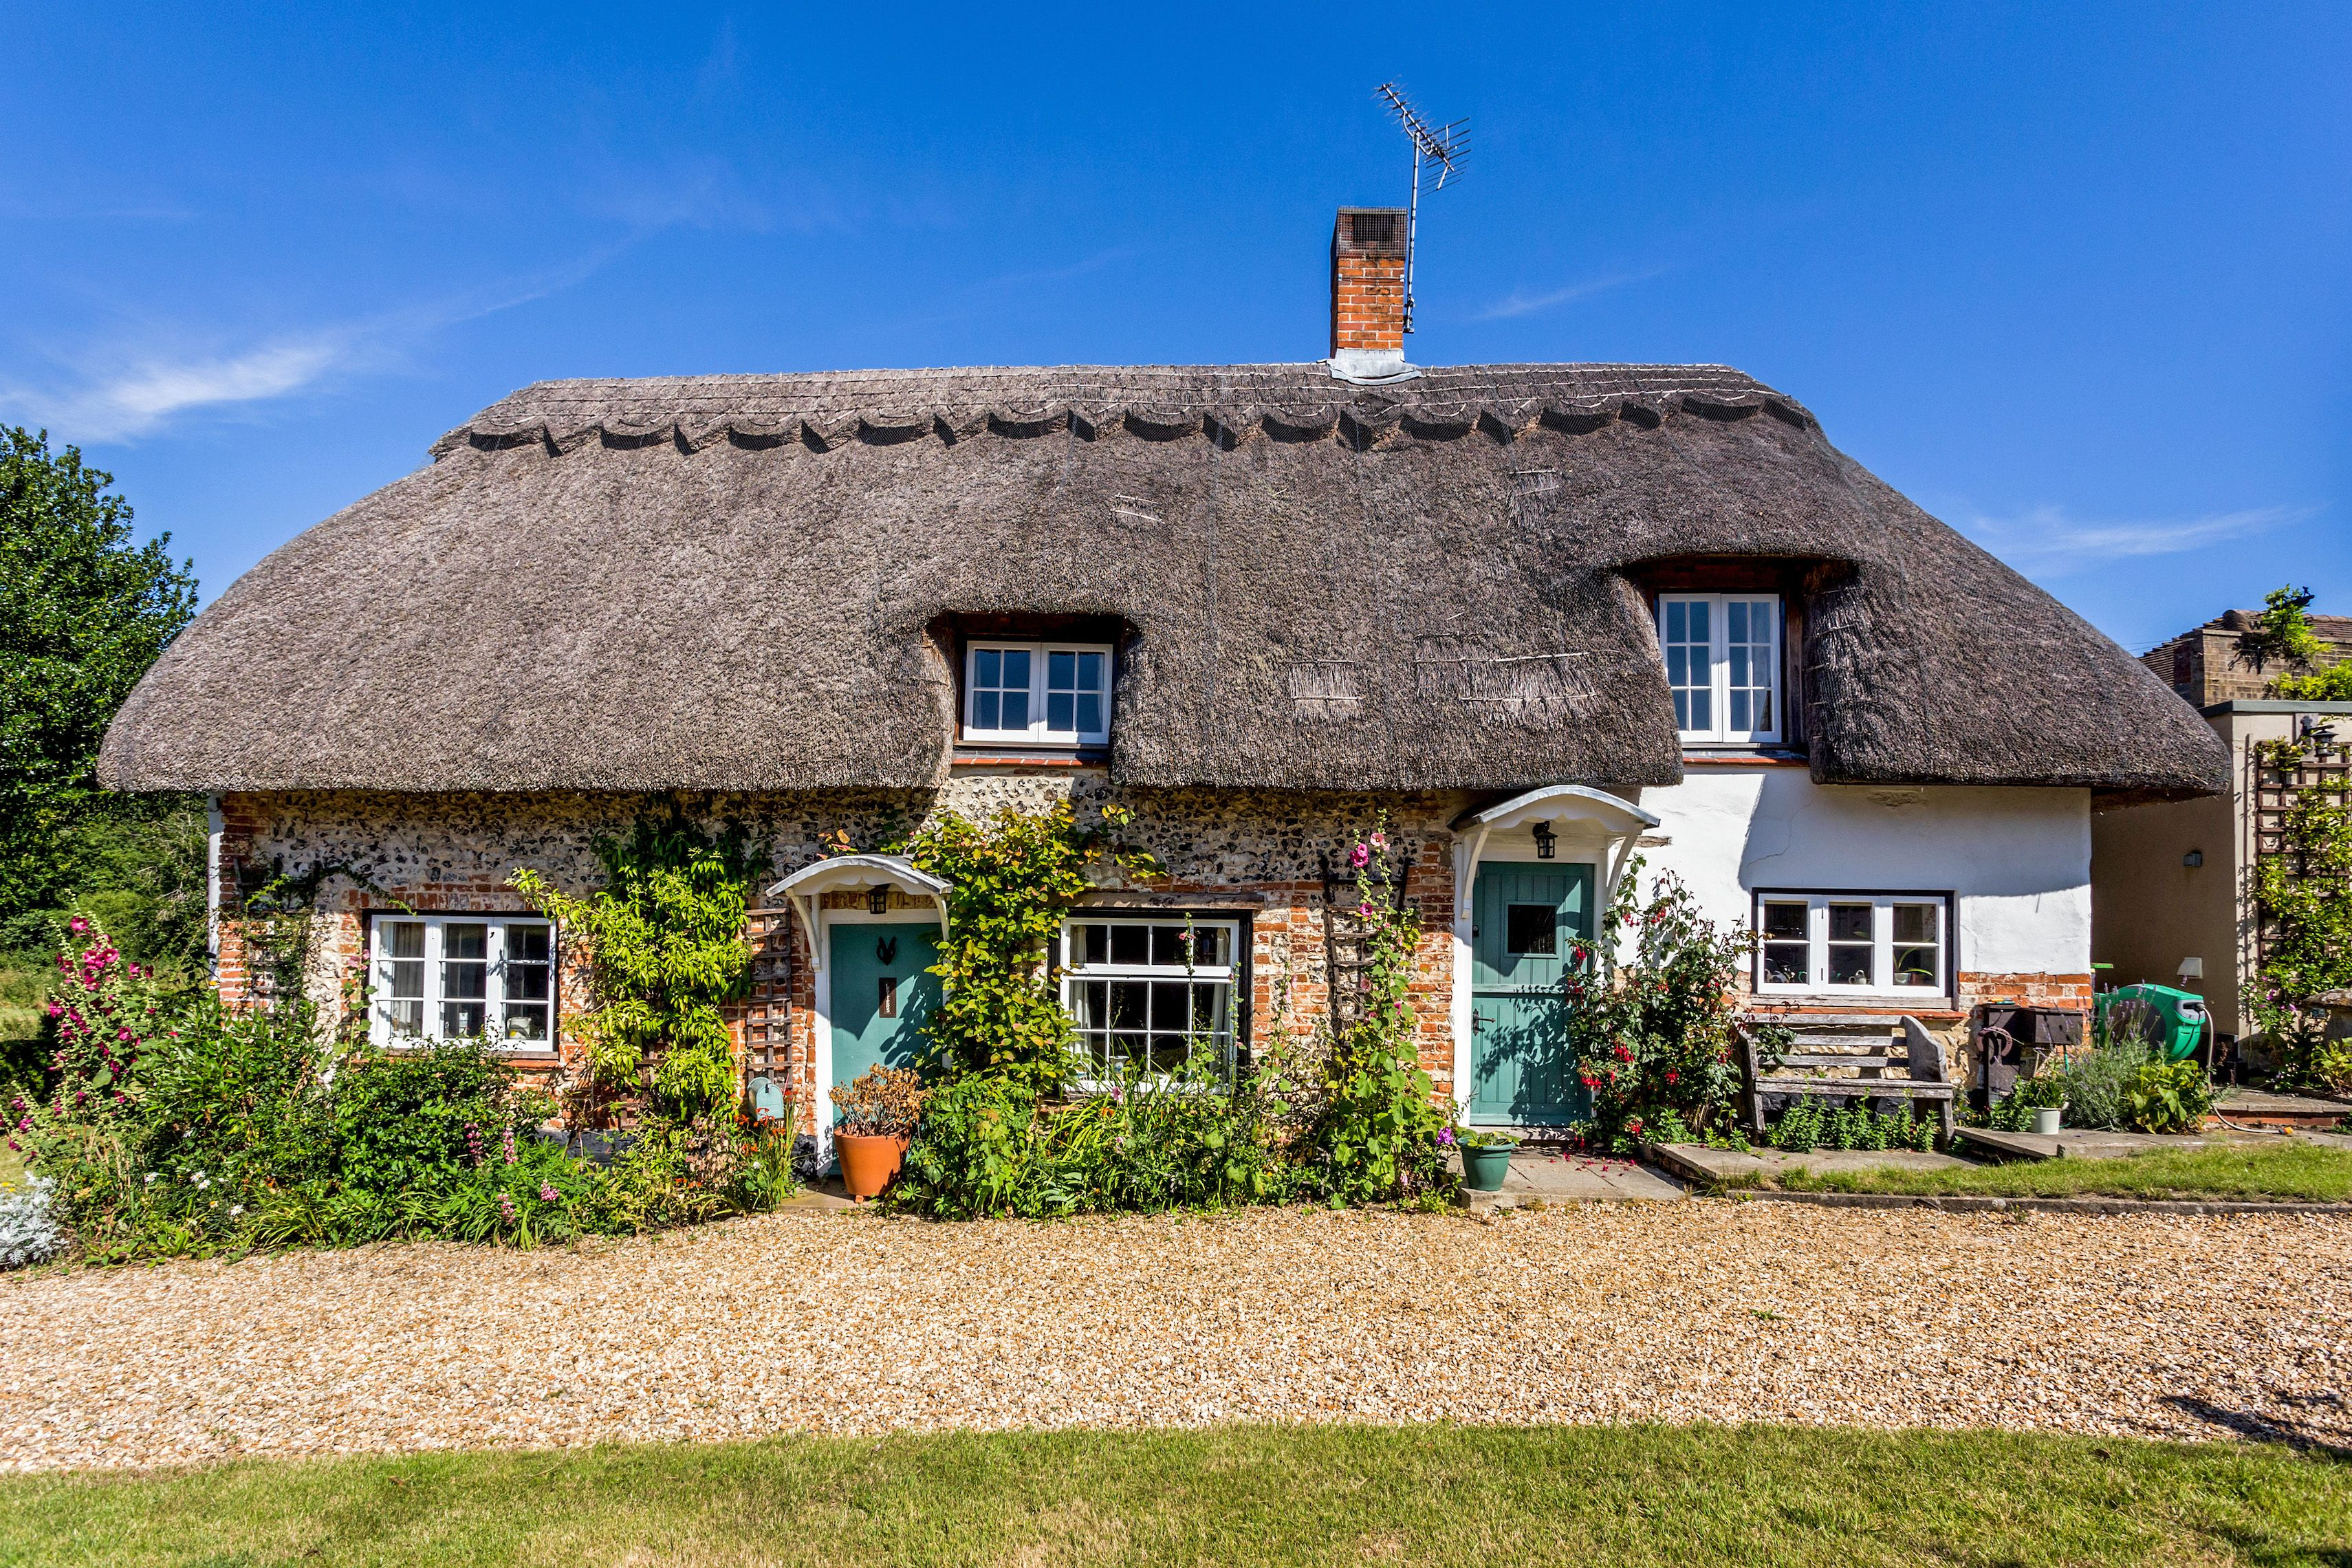 This thatched 18th century cottage in Hampshire looks like it's straight out of a fairy tale